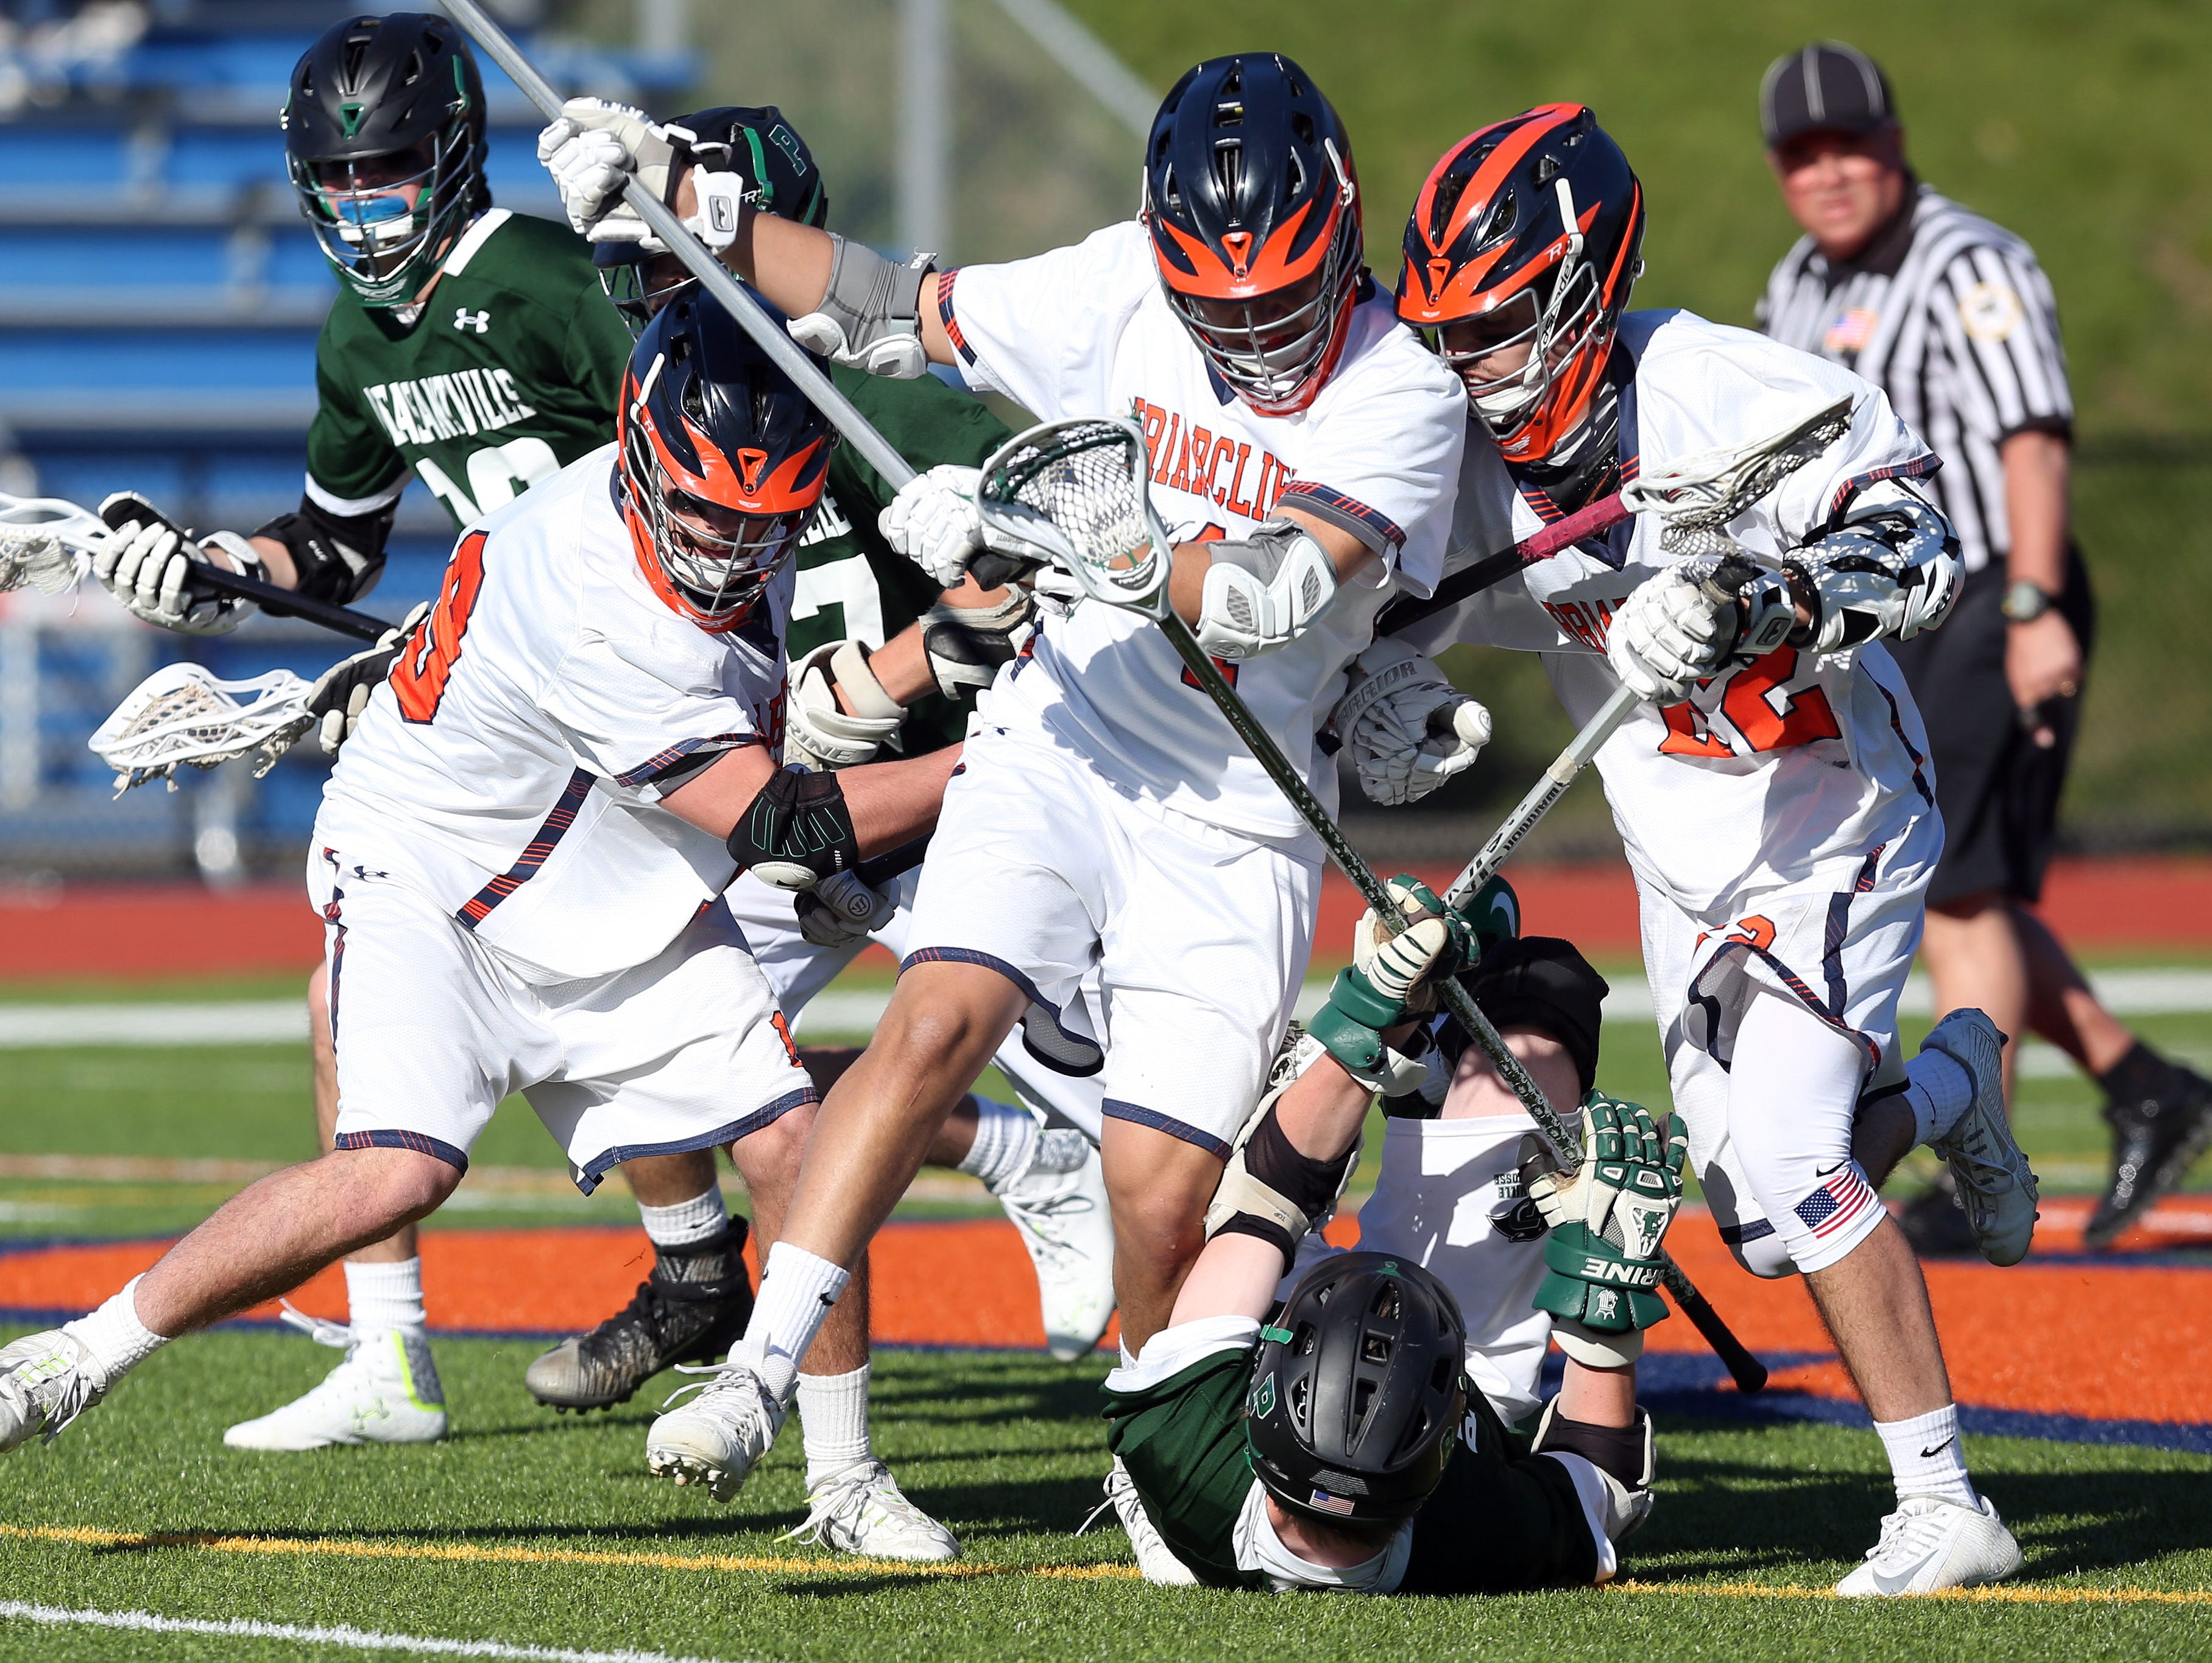 From left, Briracliff's Matt Hausman (9) Lucas Huffier (1) and John Plimpton (22) combine to steals the ball away from Pleasantville's Greg Driscoll (8) during a lacrosse game at Briarcliff High School April 20, 2016. Briarcliff won the game 8-7.